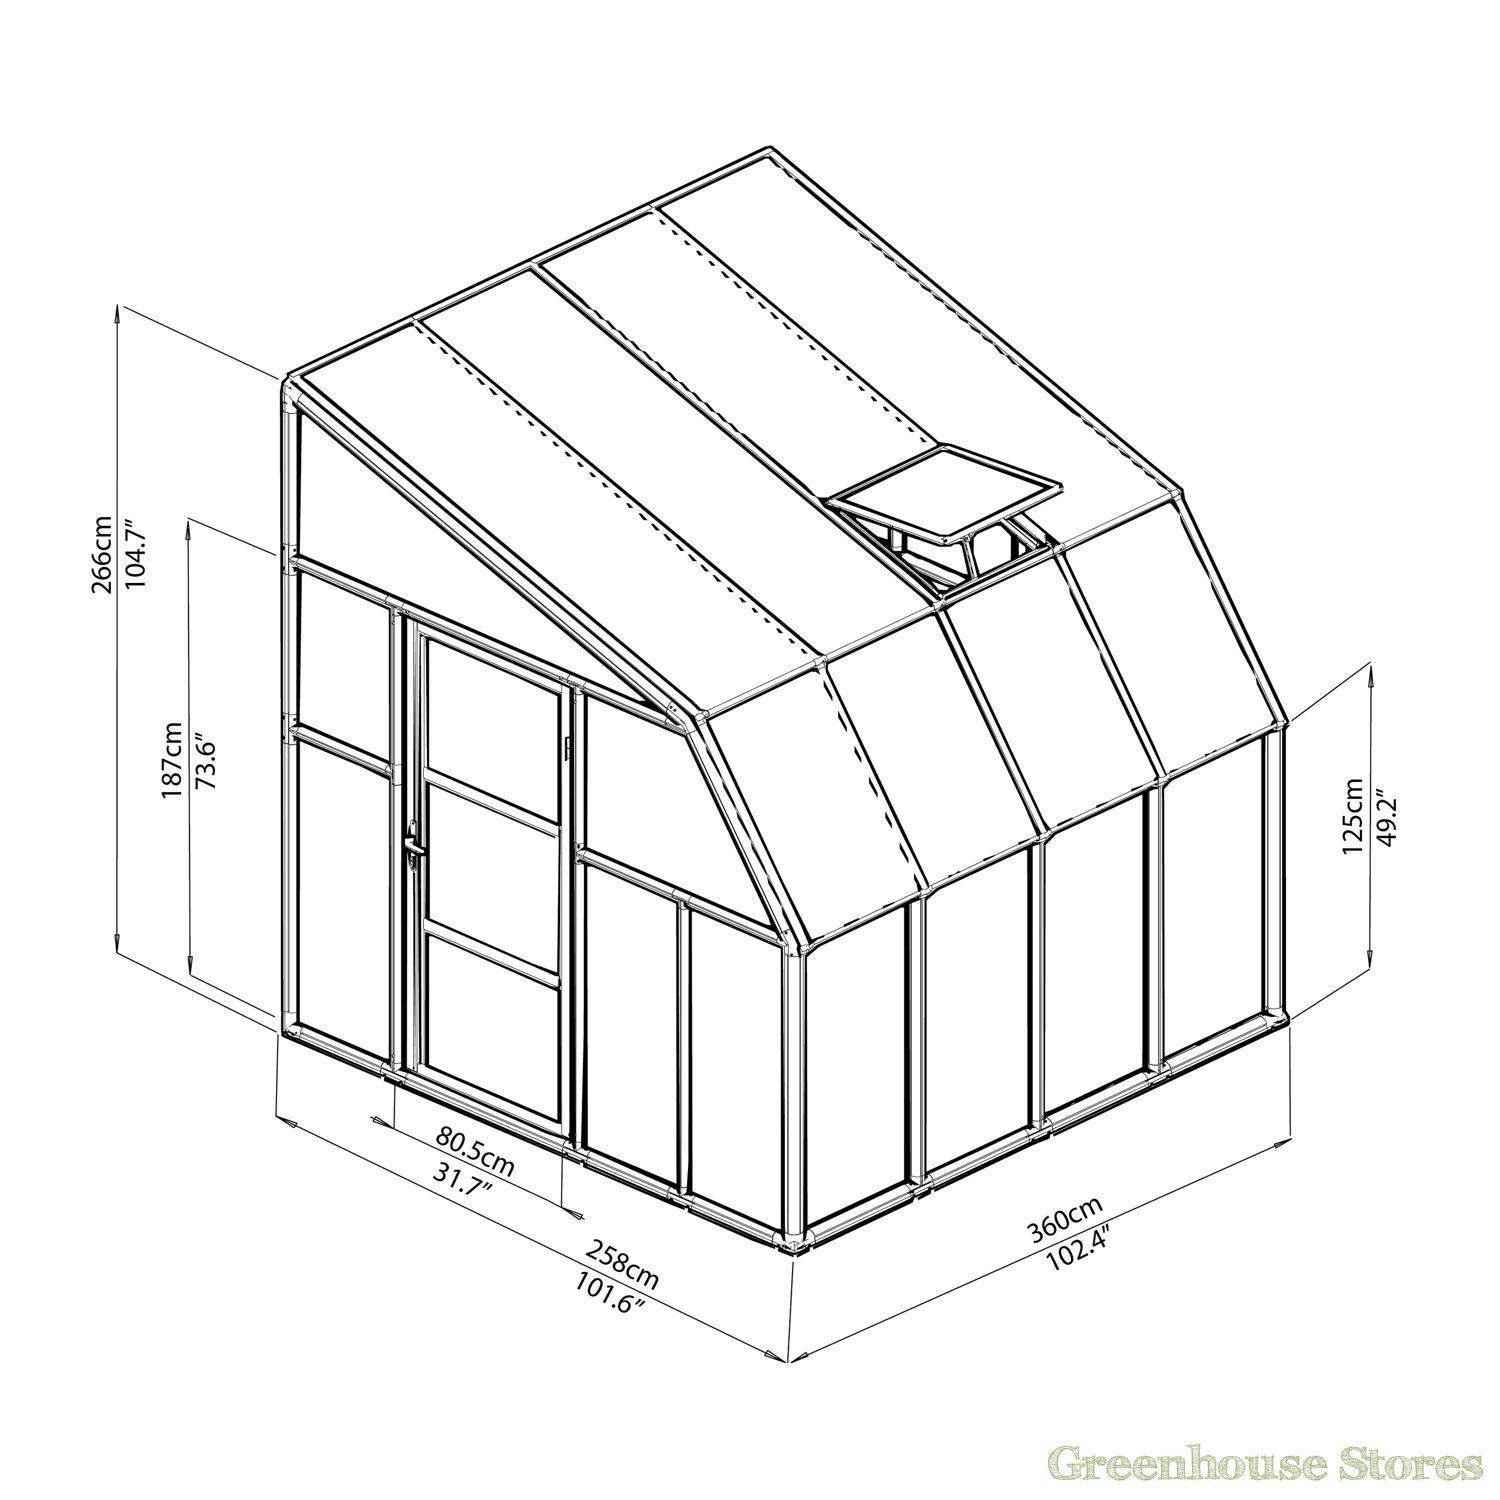 1500x1500 Rion Sun Room 8x8 Lean To Greenhouse Polycarbonate